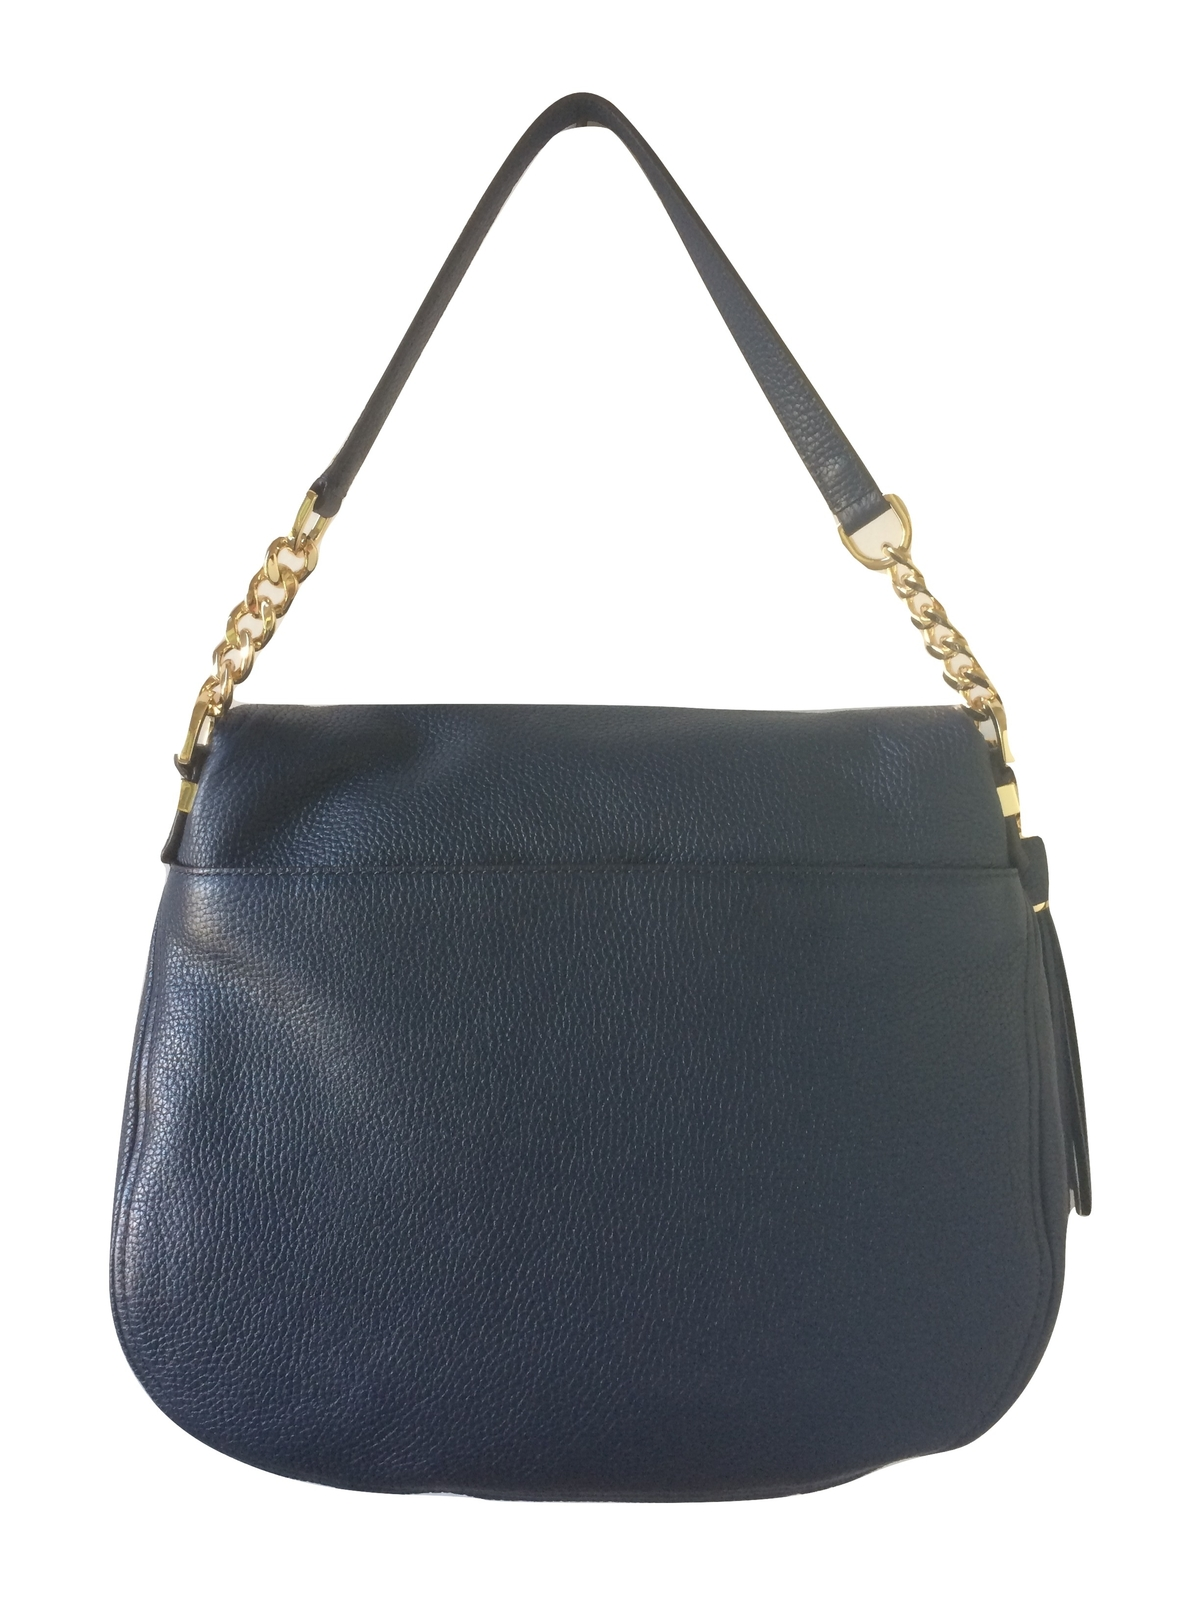 0f8106afbca6 Michael Kors Bedford Large Tassel Convertible Leather Shoulder Bag (Navy)